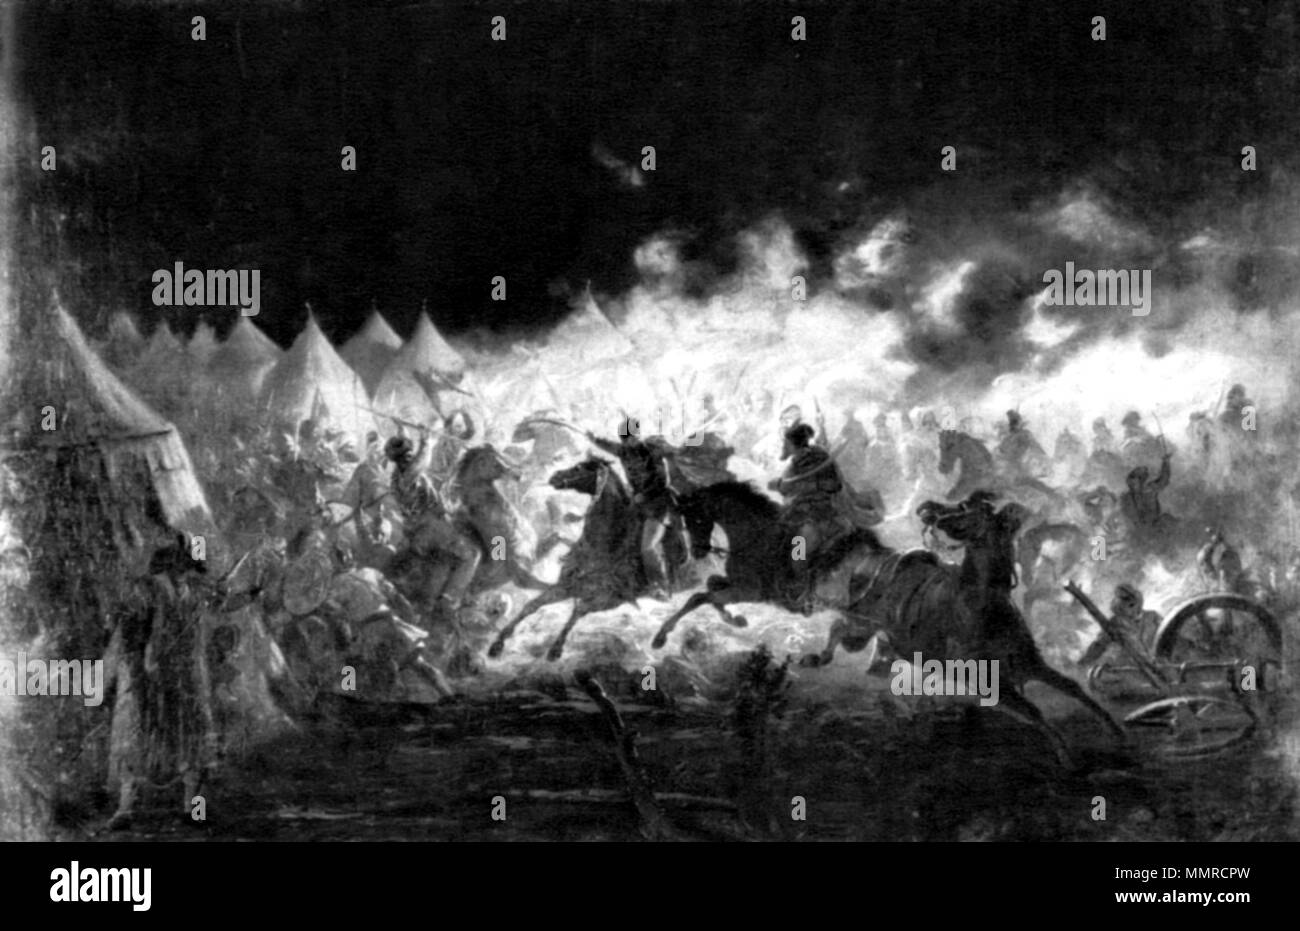 ". ""Battle with torches""  . 19th century.   Theodor Aman  (1831–1891)     Alternative names ?????? ????; Théodor ????; ??????? ?????? ????; Teodor Aman; Théodor Aman; Dimitrie Mihali Dimo  Description Romanian painter  Date of birth/death 20 March 1831 19 August 1891  Location of birth/death Câmpulung Bucure?ti  Authority control  : Q716808 VIAF:?22412682 ISNI:?0000 0000 8101 6549 ULAN:?500032448 LCCN:?n83237389 NLA:?35878987 WorldCat Bataliacufacle - Stock Image"